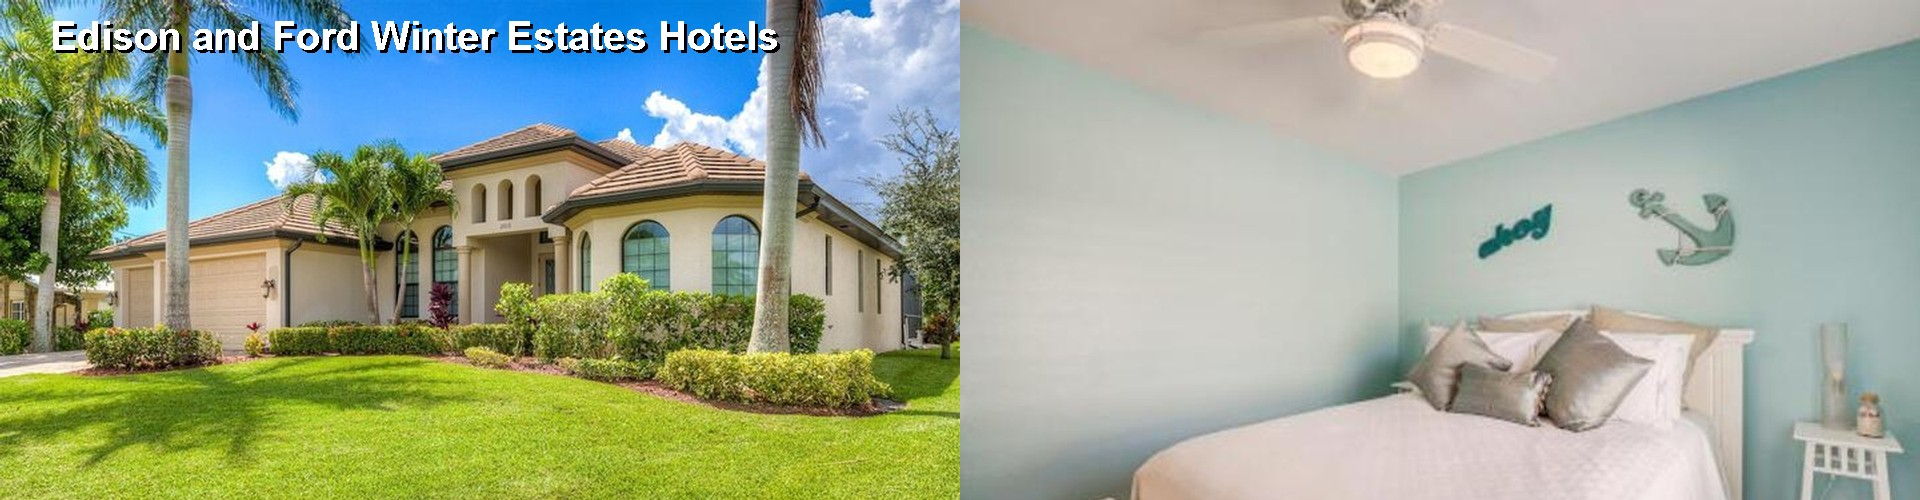 3 Best Hotels near Edison and Ford Winter Estates